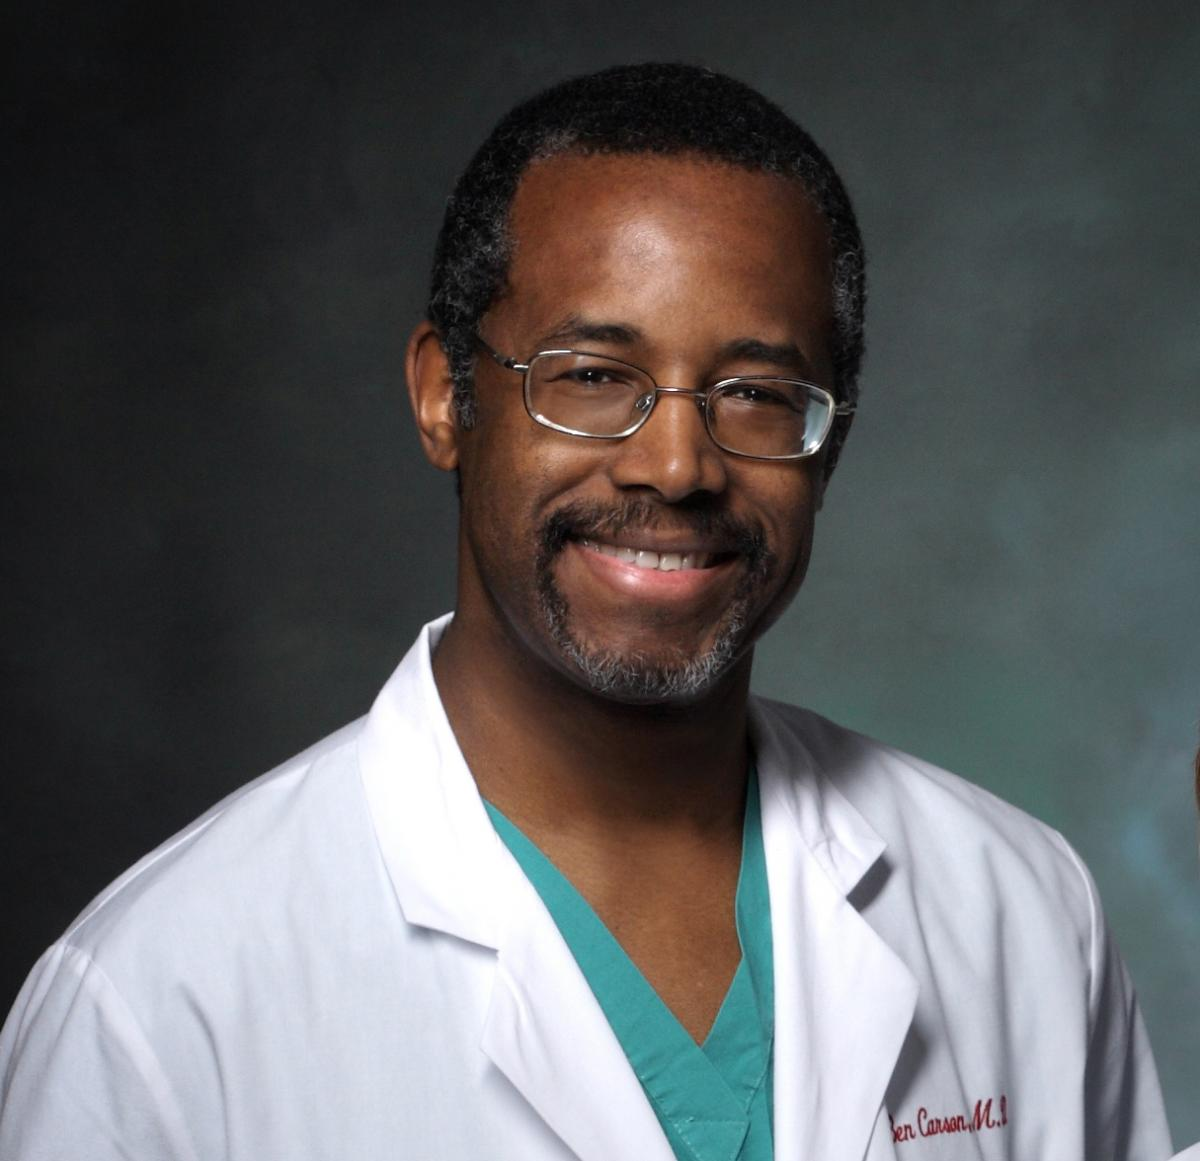 the life and achievements of benjamin carson an american neurosurgeon As do other neurosurgeons at leading medical centers, dr carson tackles the   that she had no life, so there was not really anything to risk, he said  she  made my brother and me turn off the television, restricting us to two.